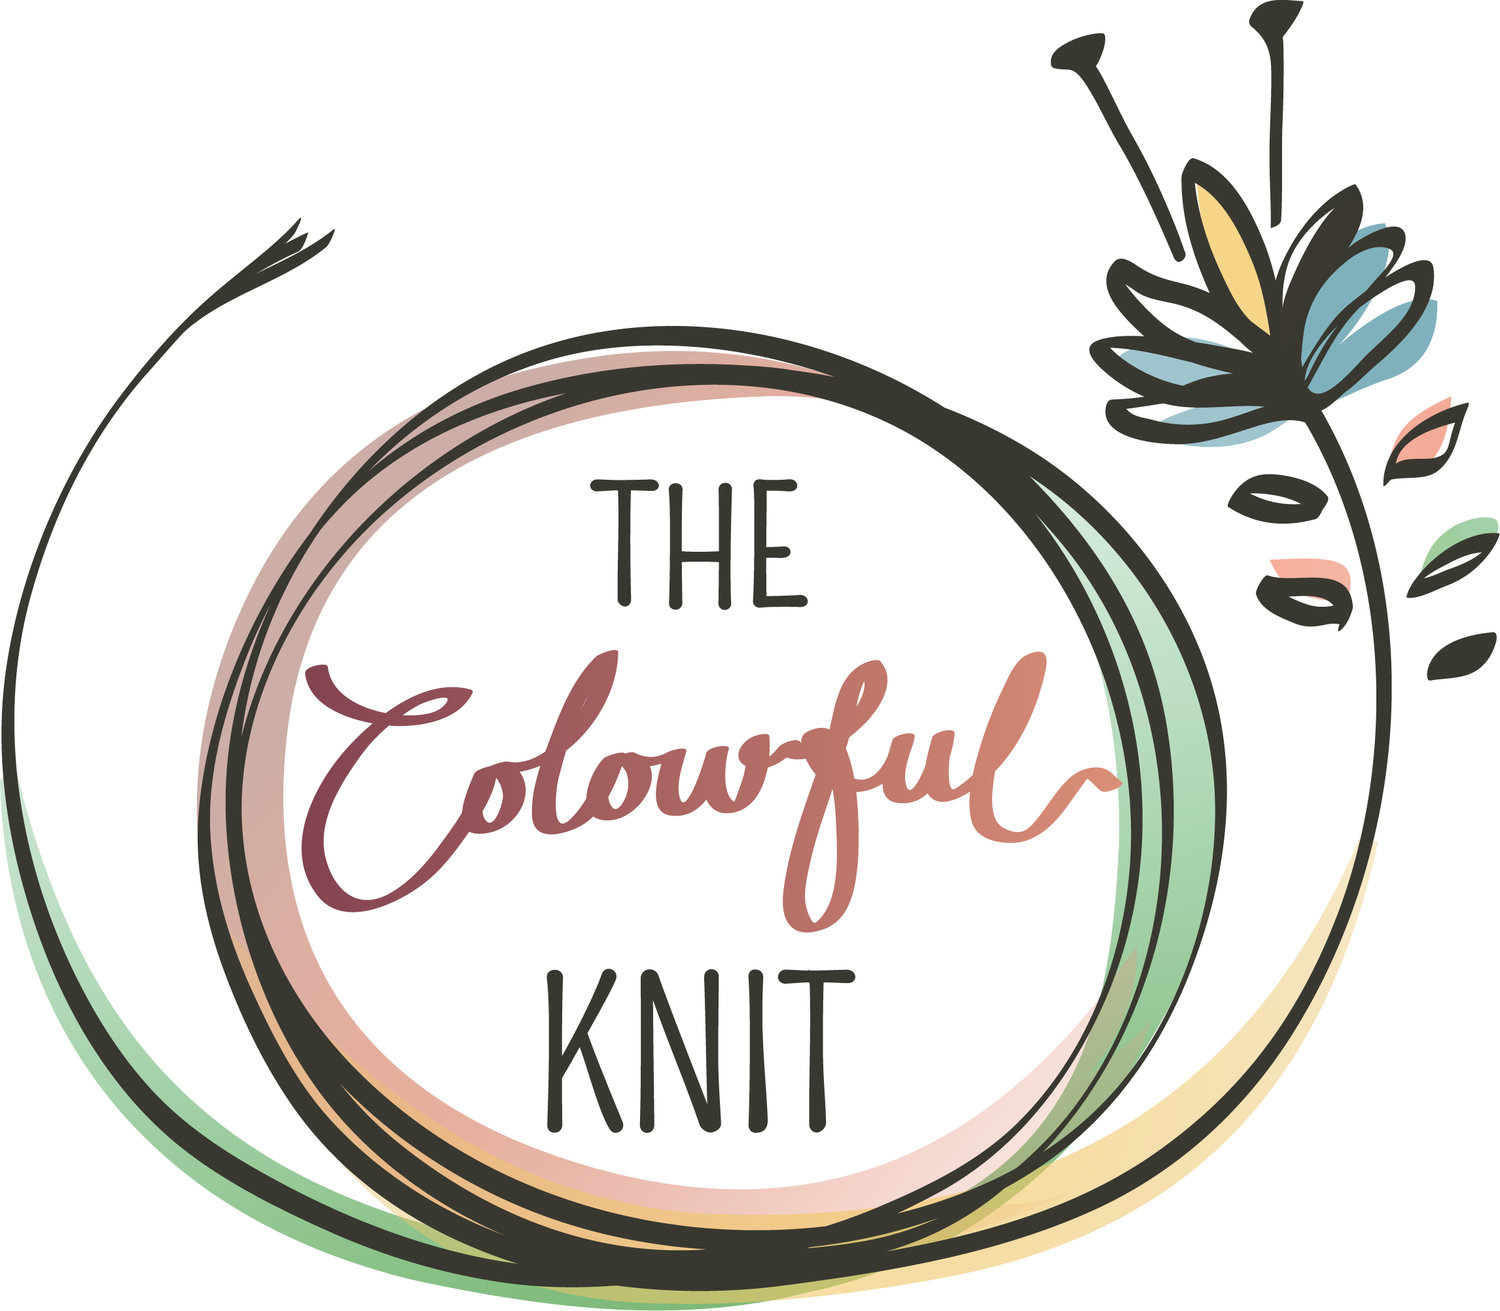 The Colourful Knit